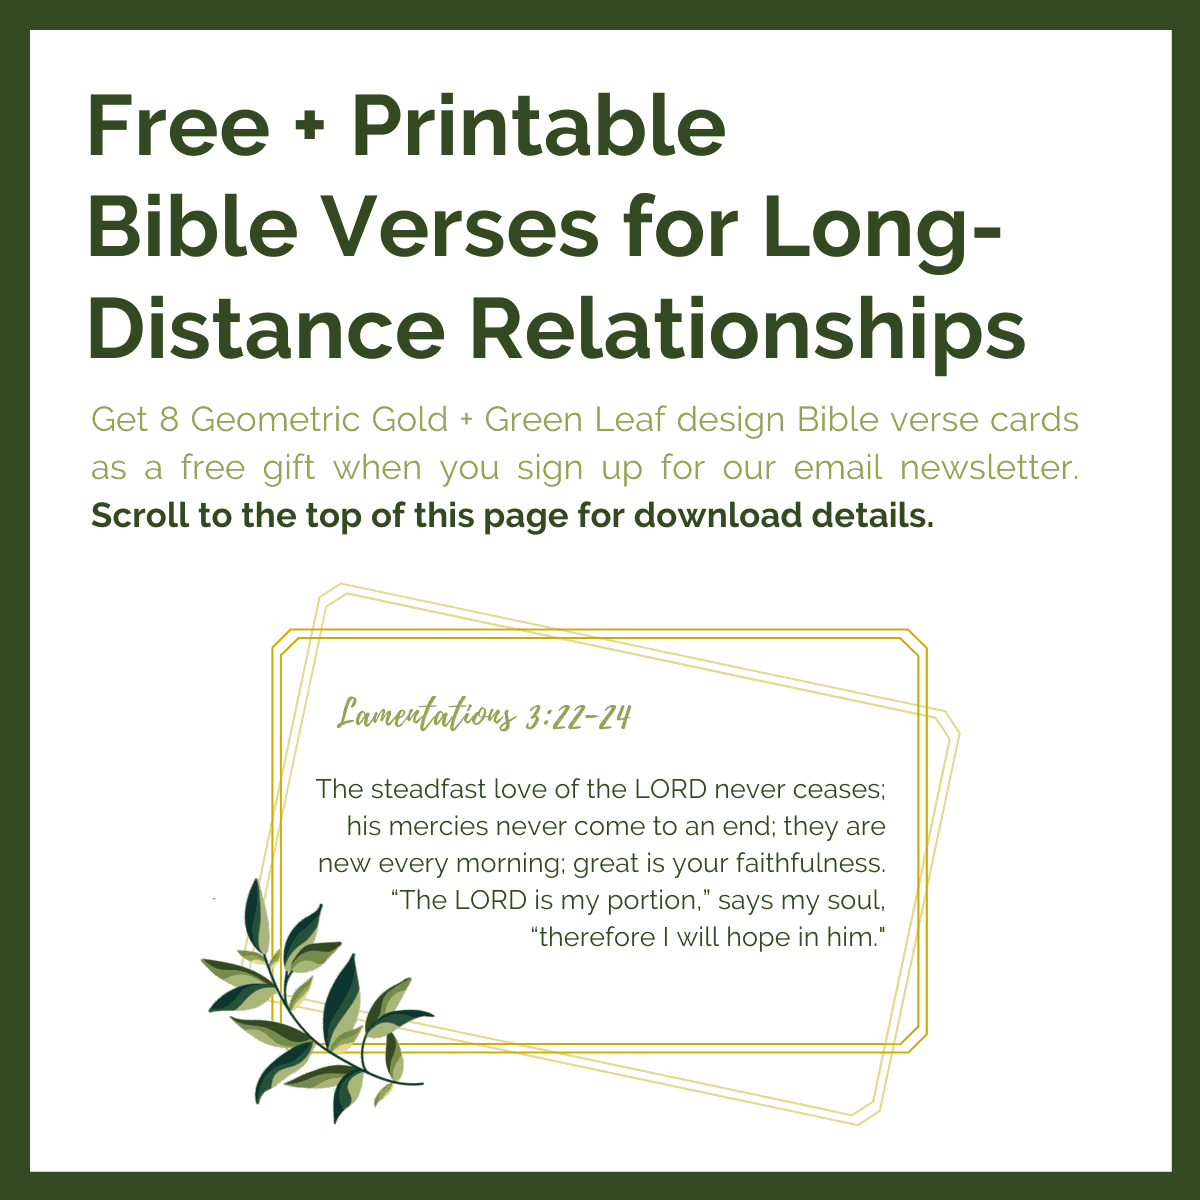 Bible verses for long-distance love relationships